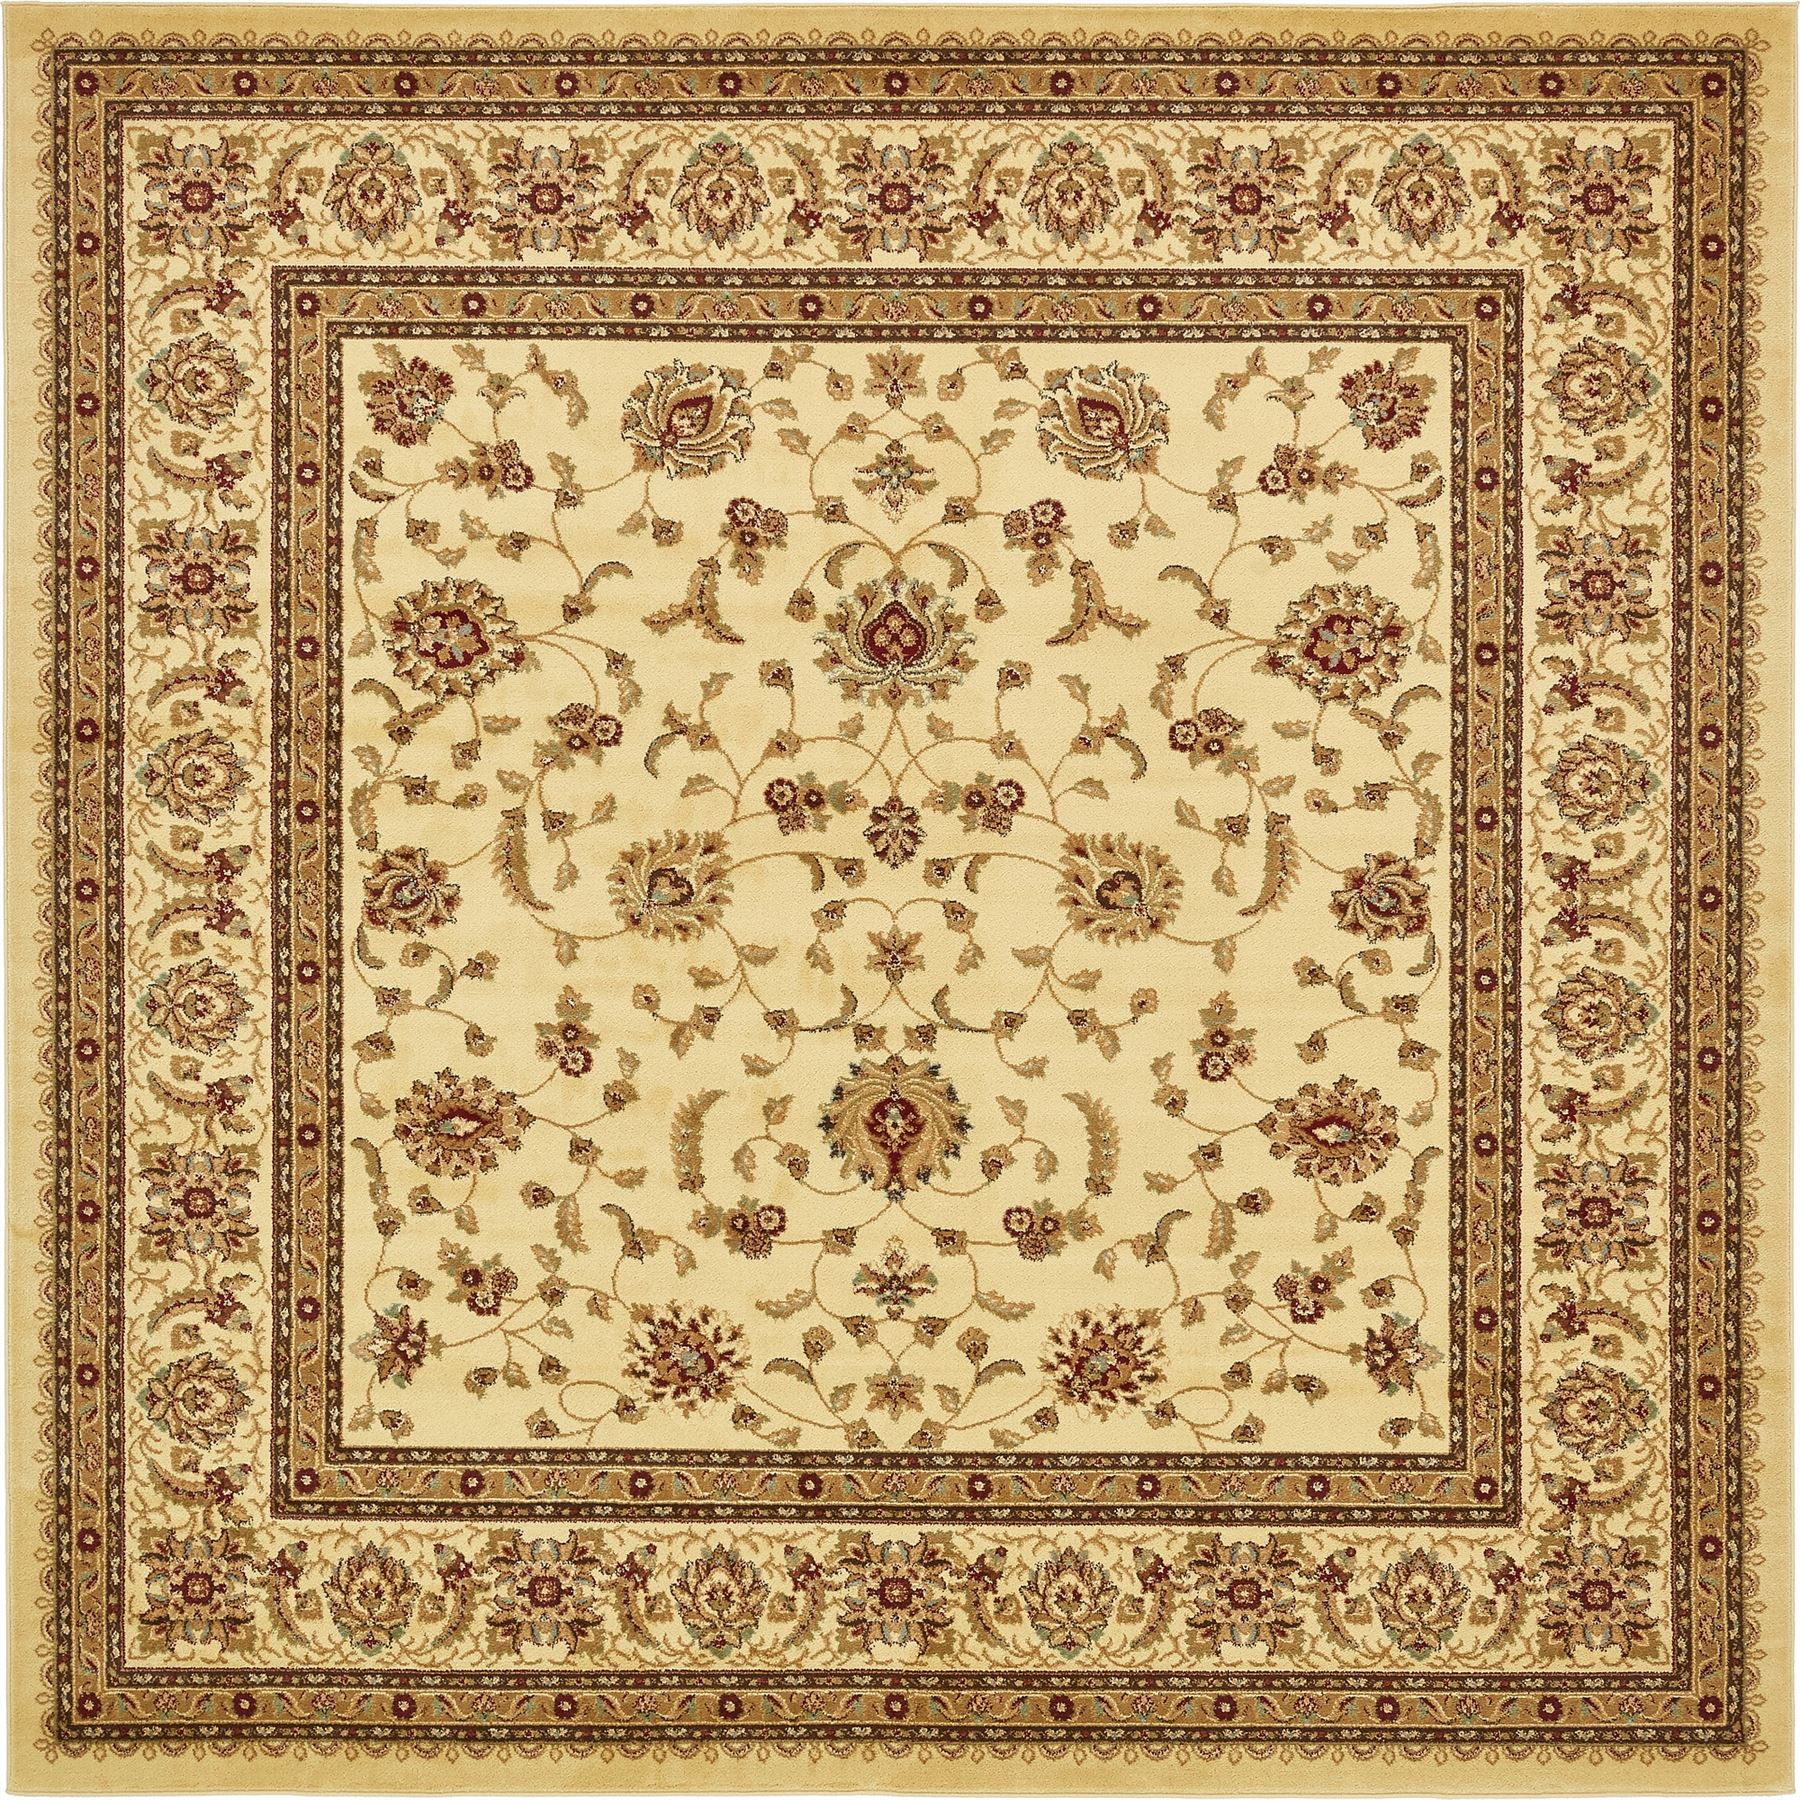 Traditional Persian Design Area Rug Large All Over Floral